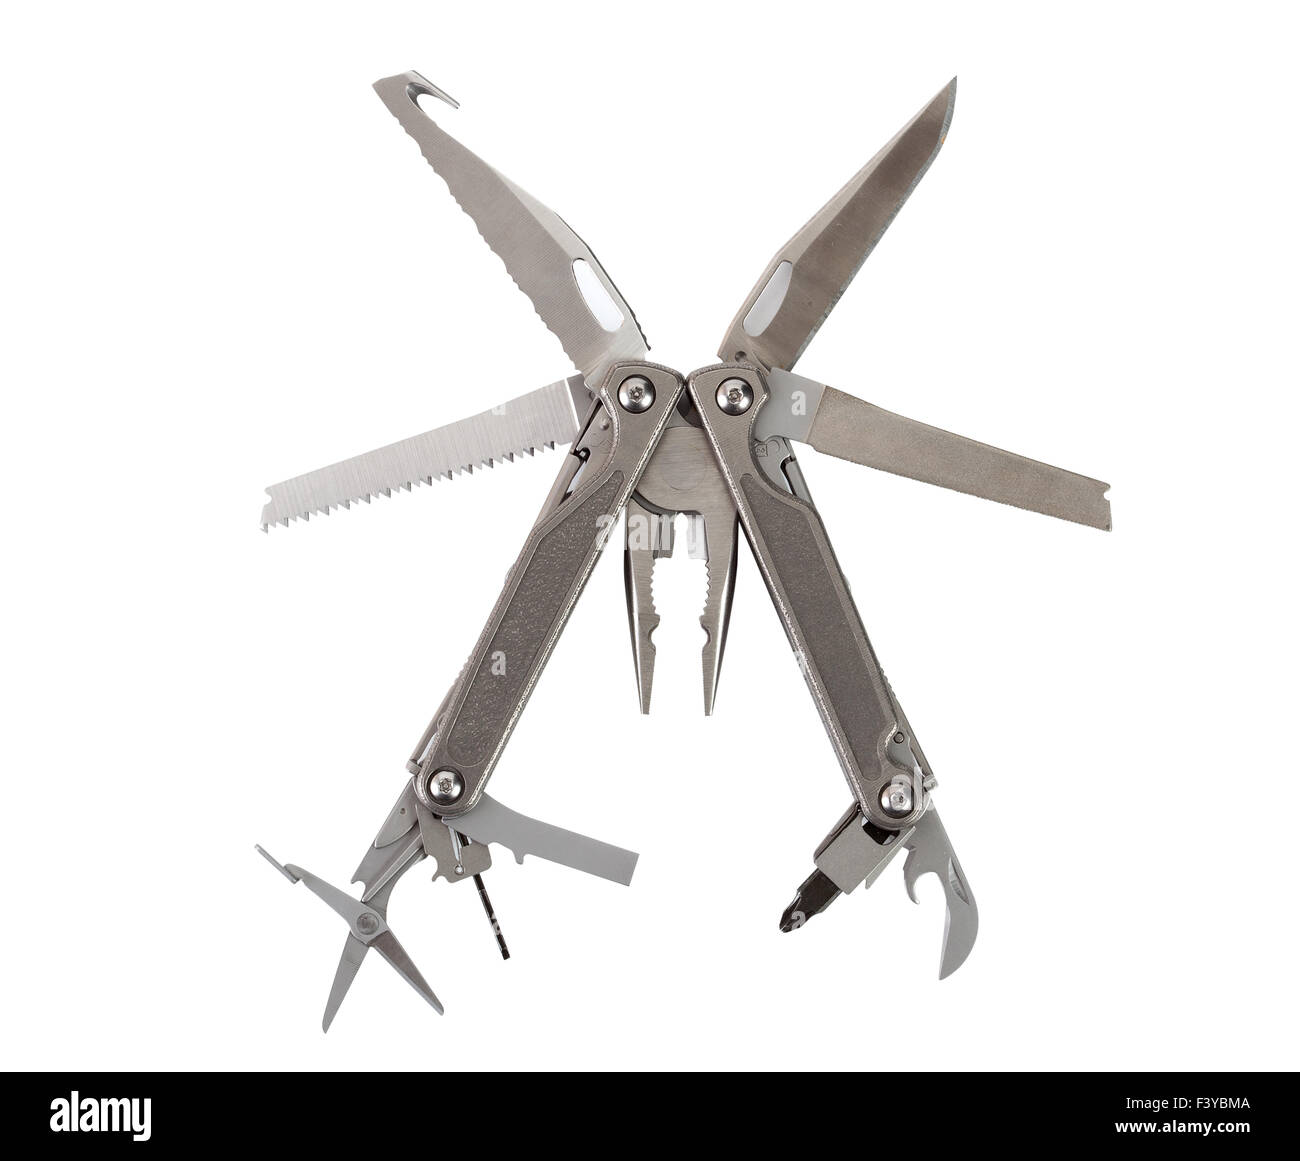 Pocket knife - Stock Image